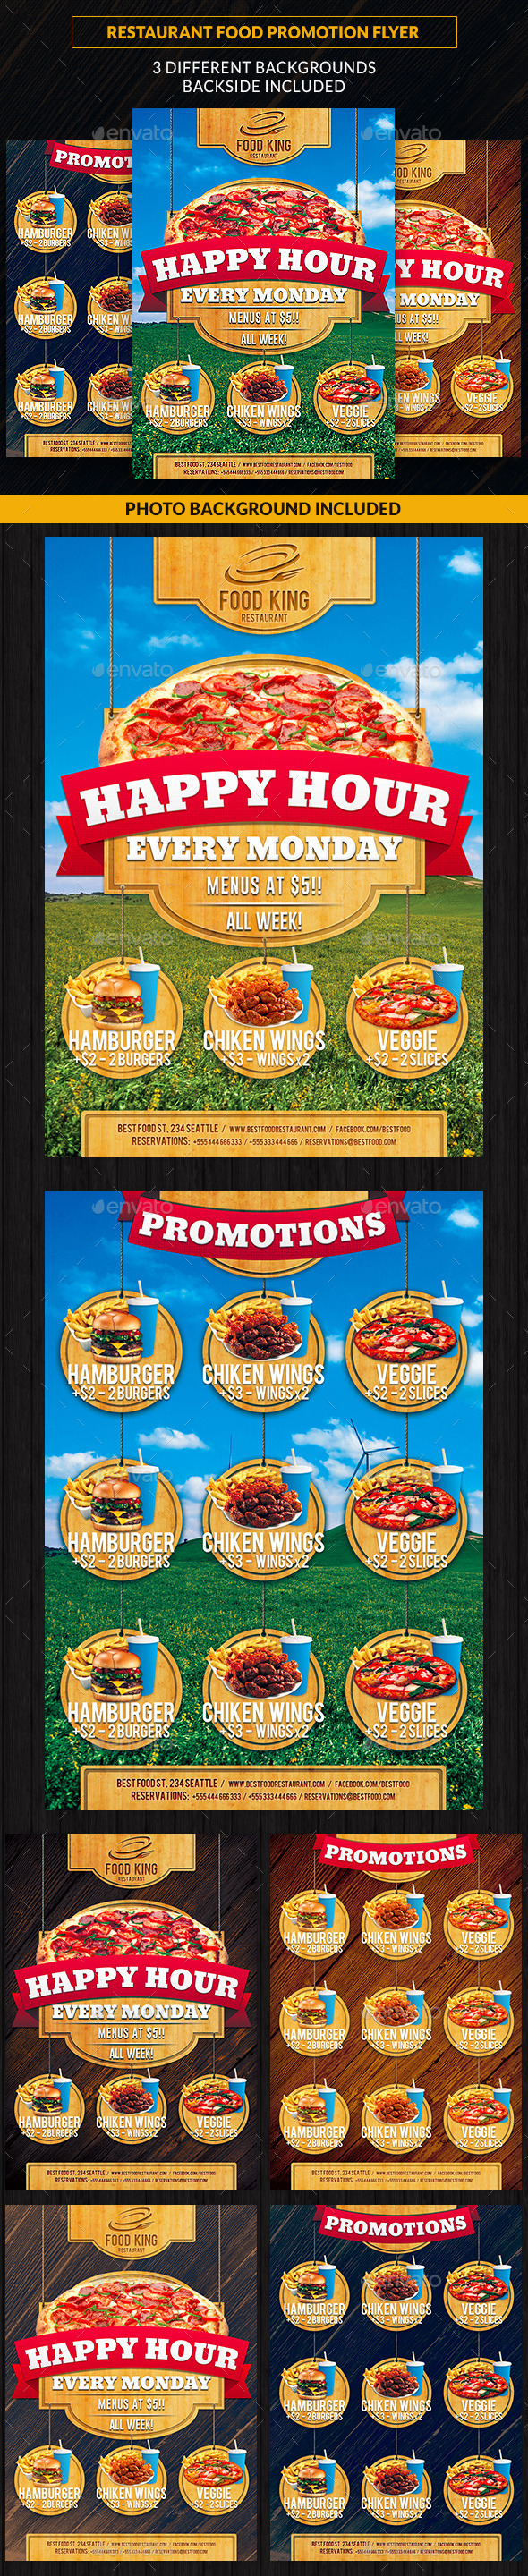 Restaurant Food Promotion Flyer - Restaurant Flyers